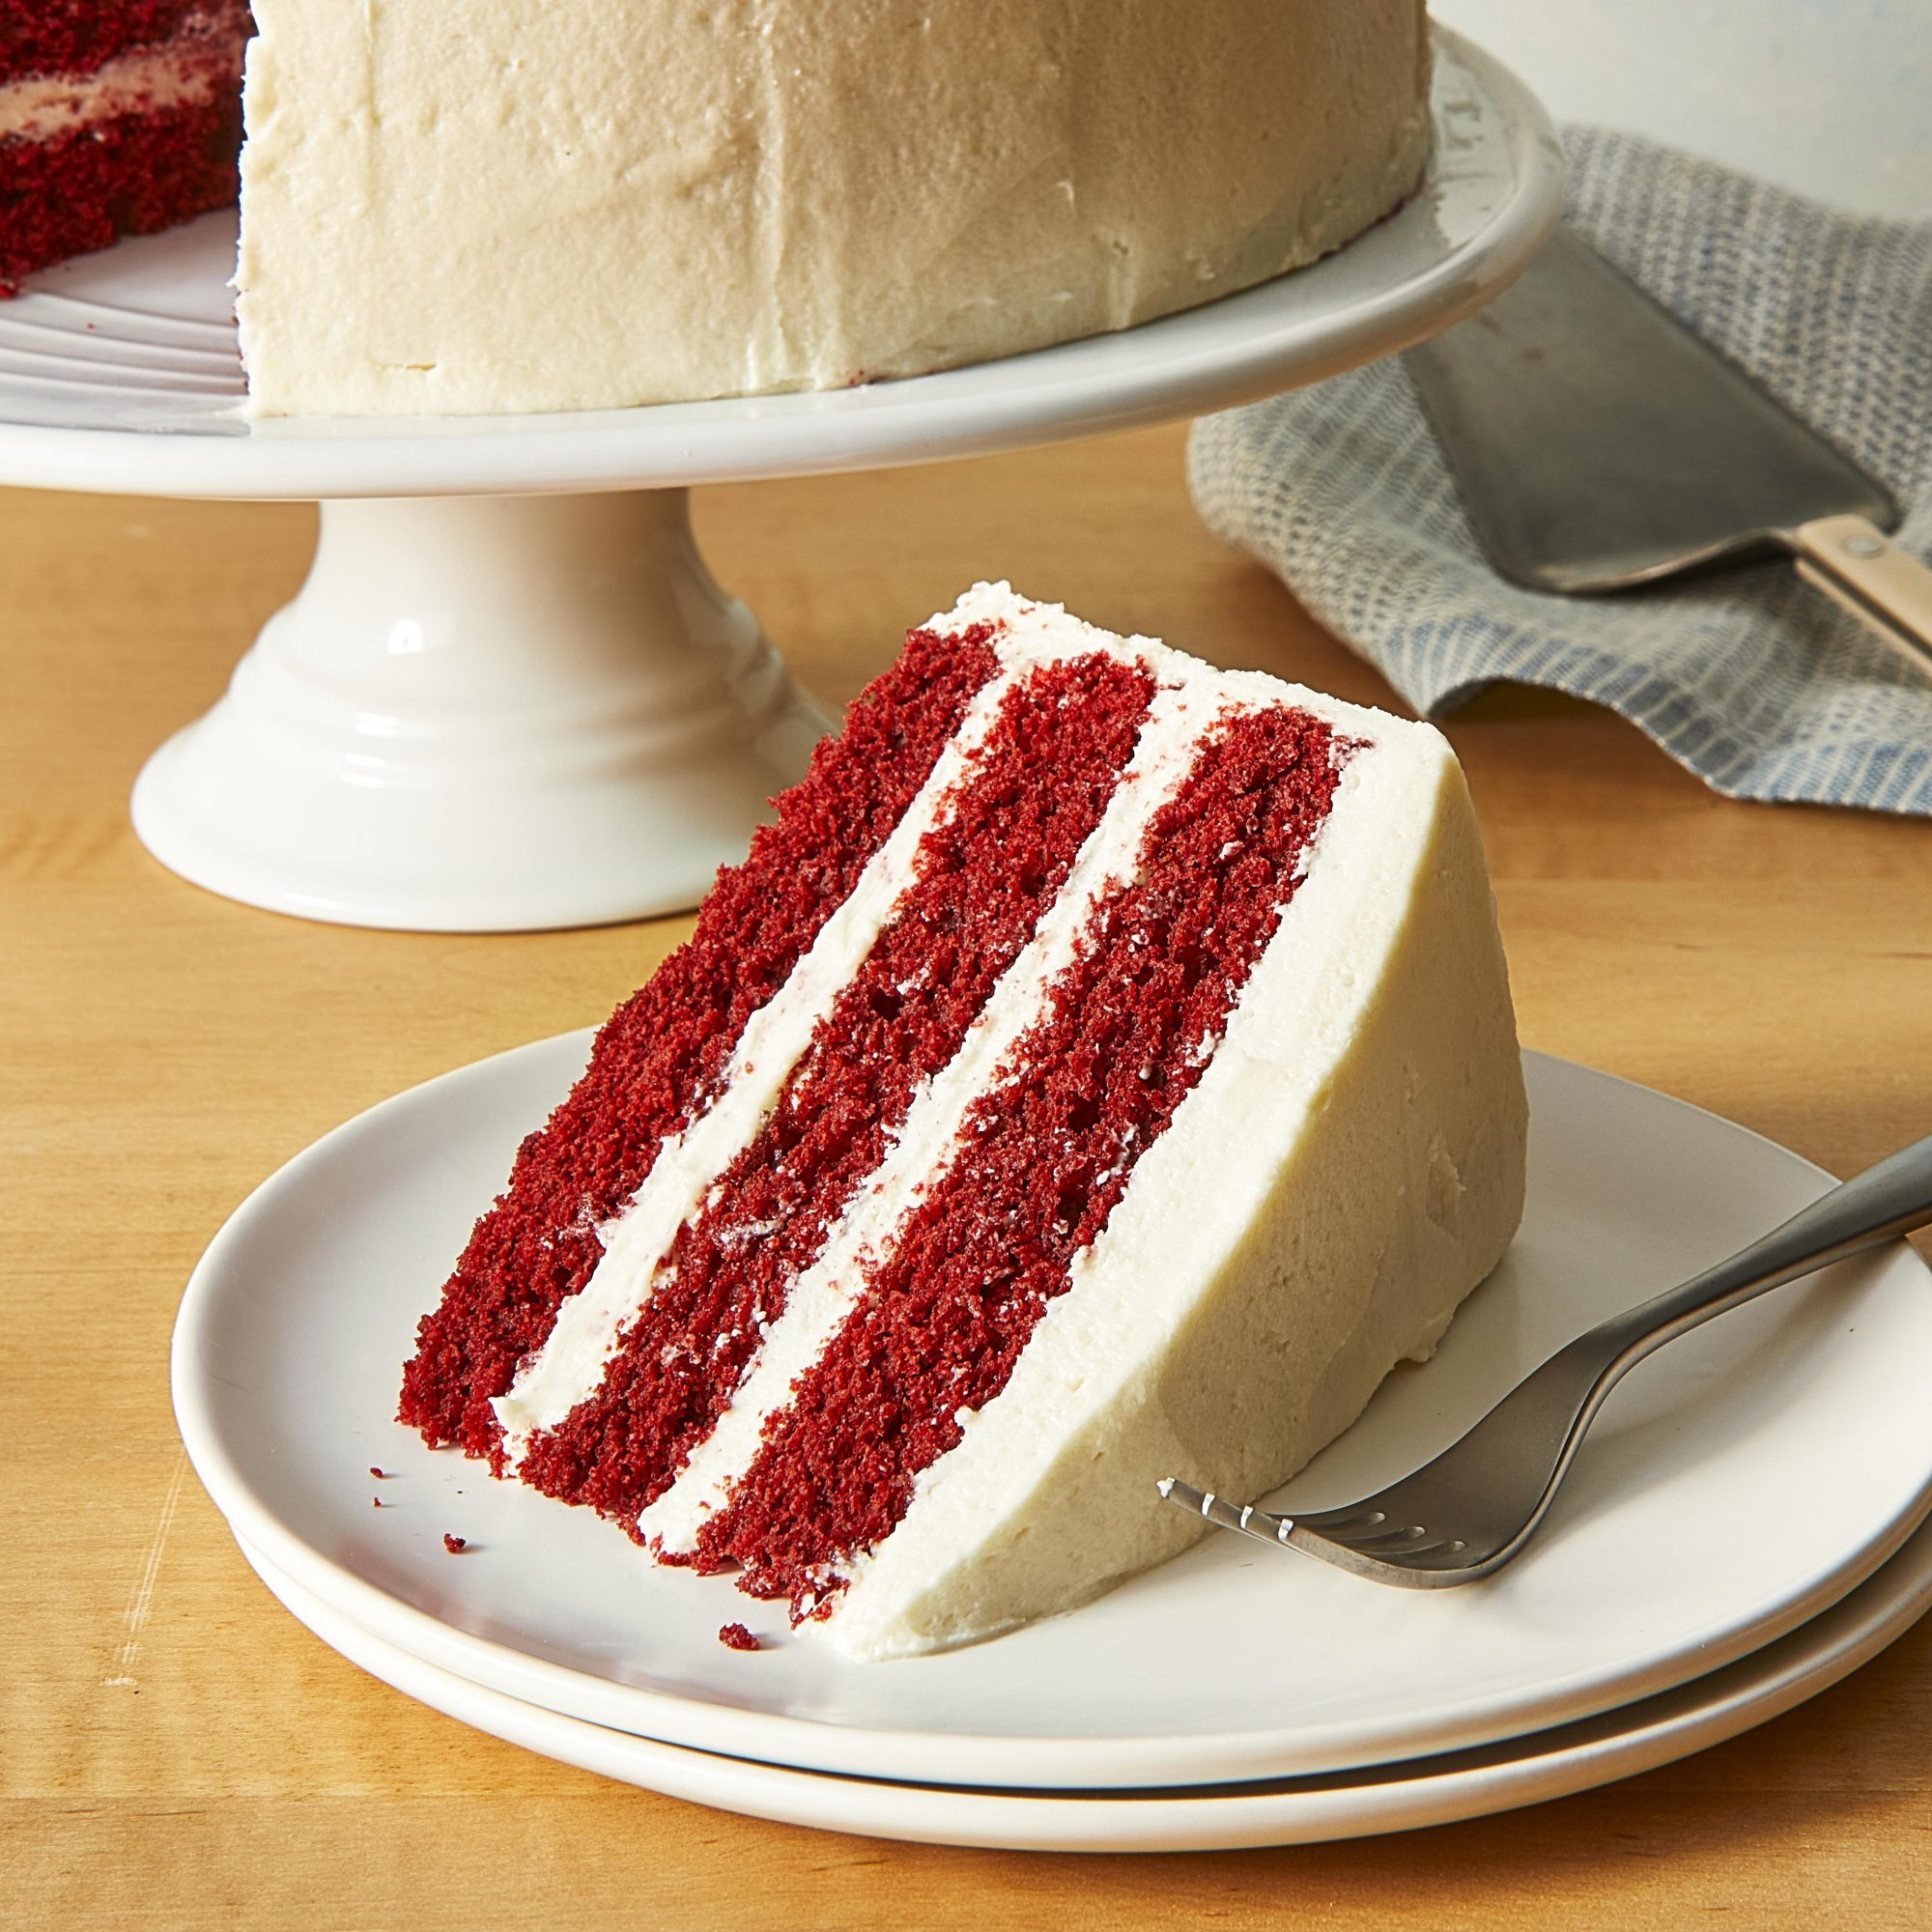 Slice of red velvet cake with the remaining cake on a stand in the background.